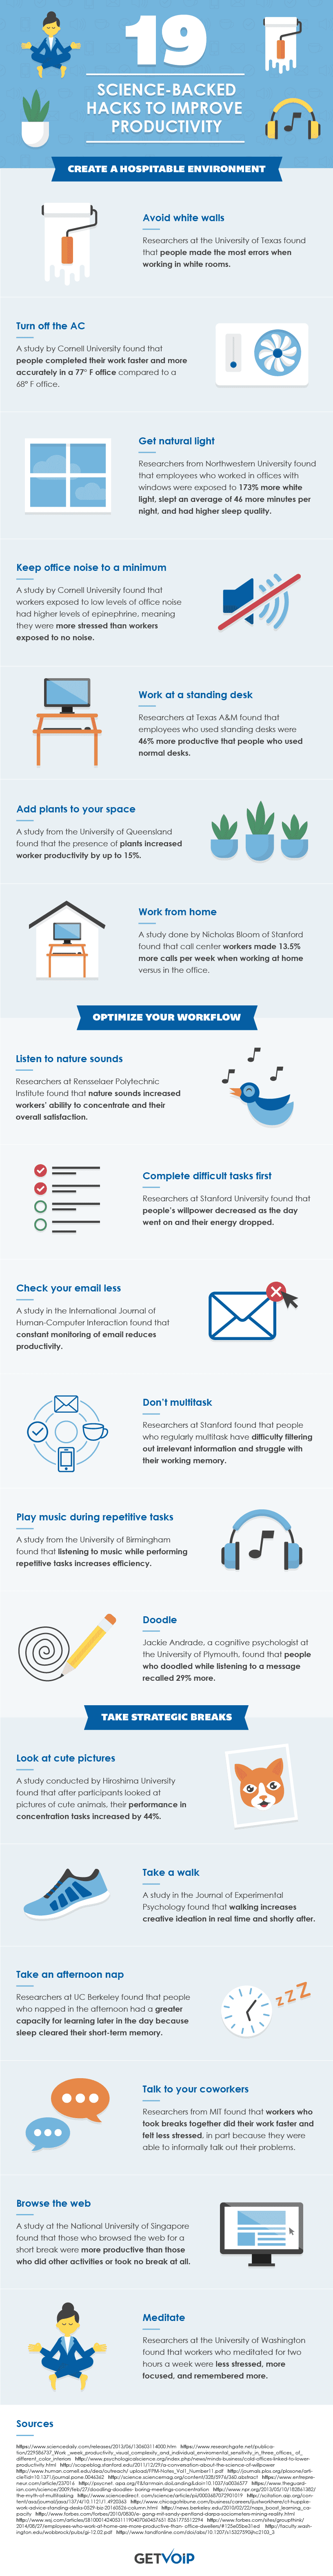 getvoip improve productivity infographic